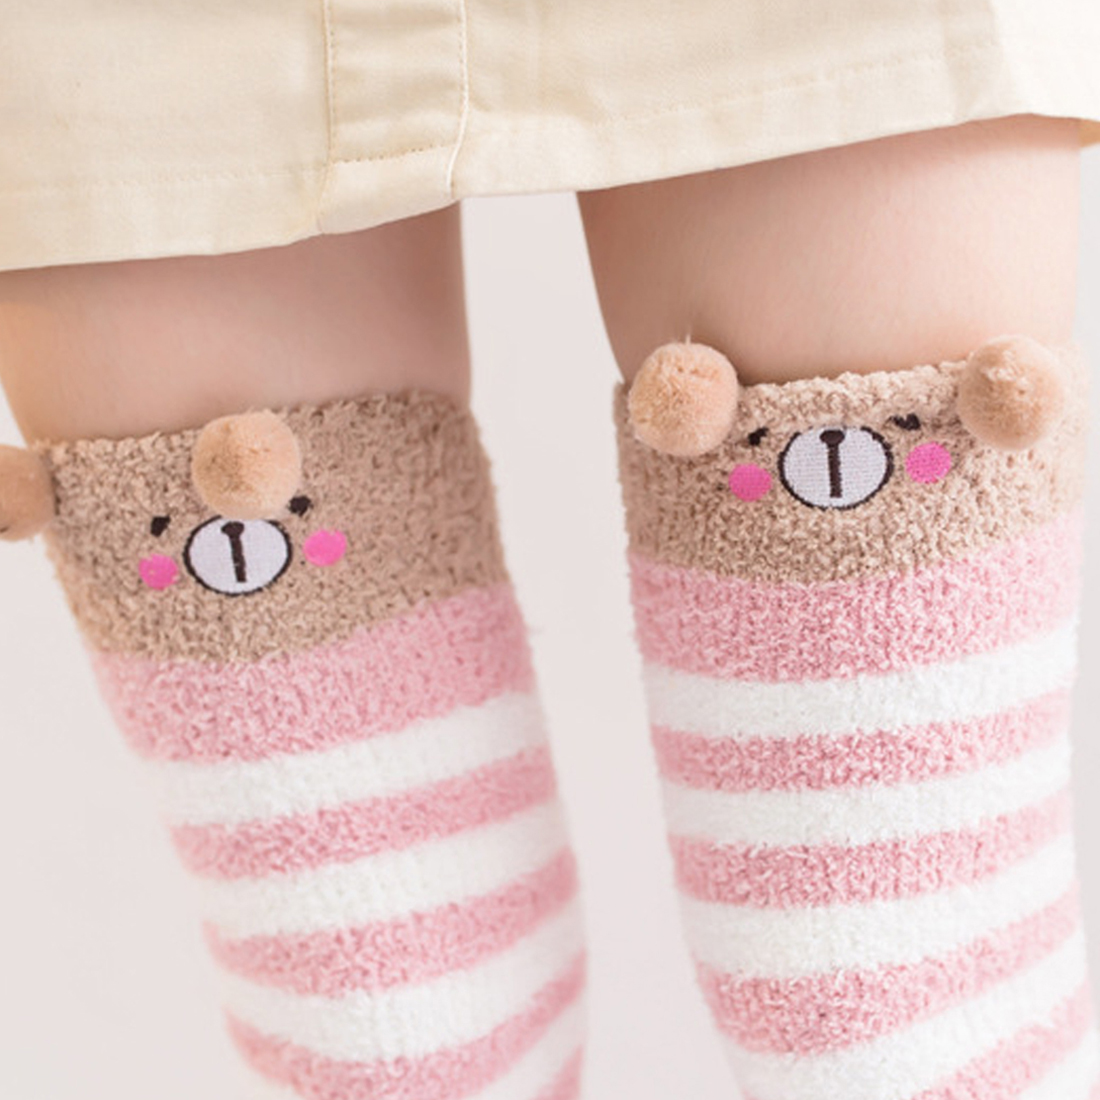 Hot Winter Warm Coral Fleece Long Thigh High Socks Girls Women Animal Modeling Stockings Striped Cute Knee Socks Medias De Mujer